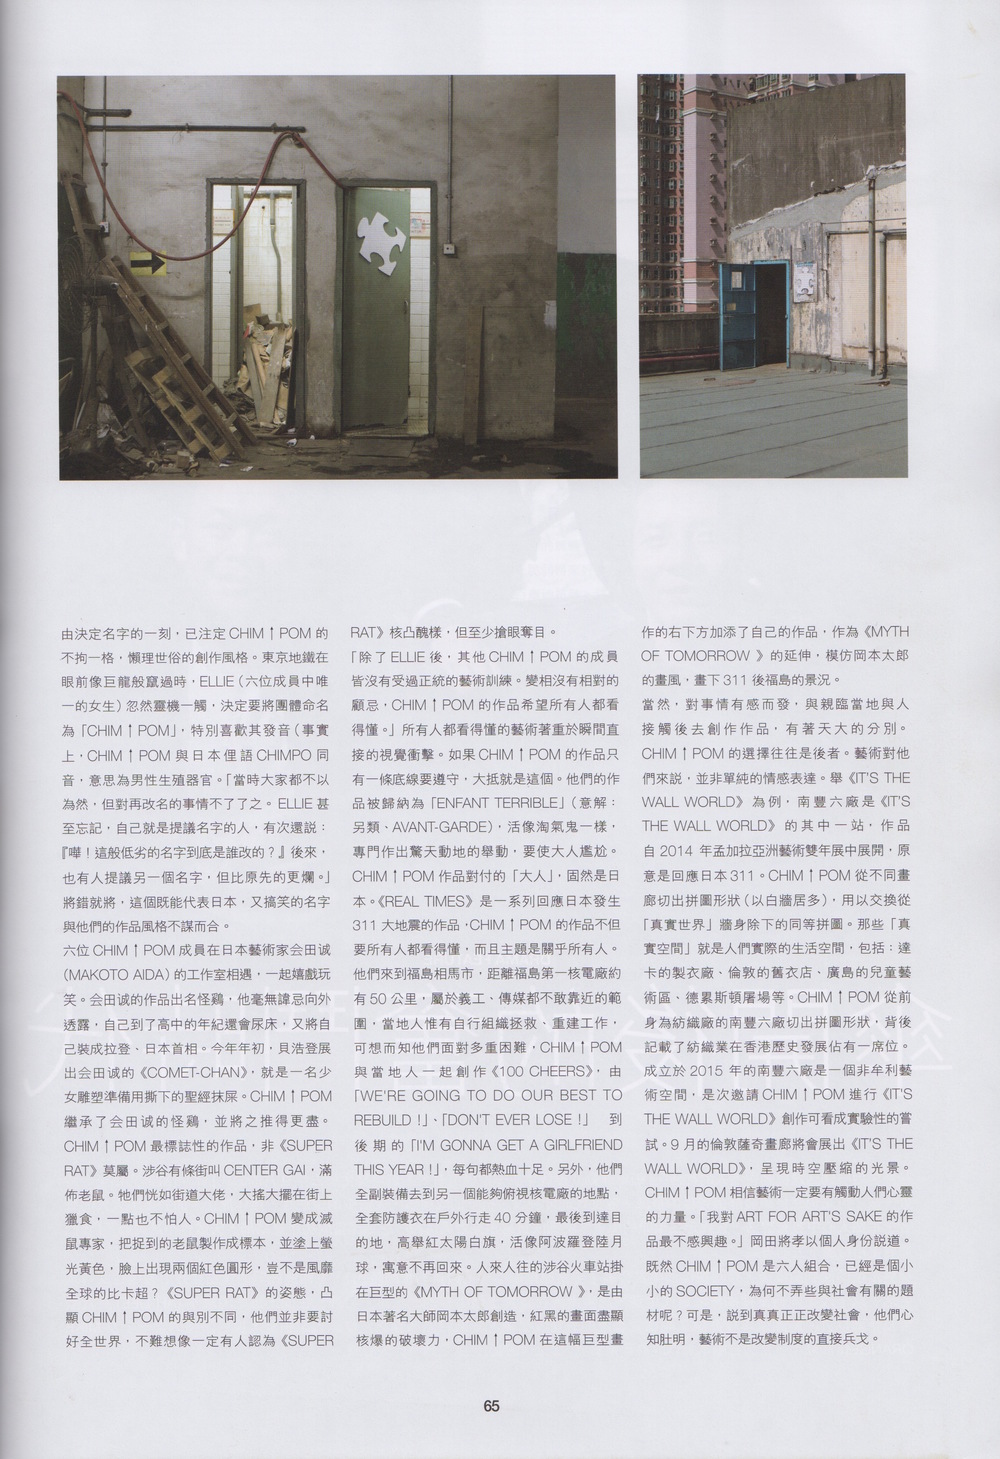 CITYMAGAZINE_ISSUE 468_SEP2015_P.65.jpeg